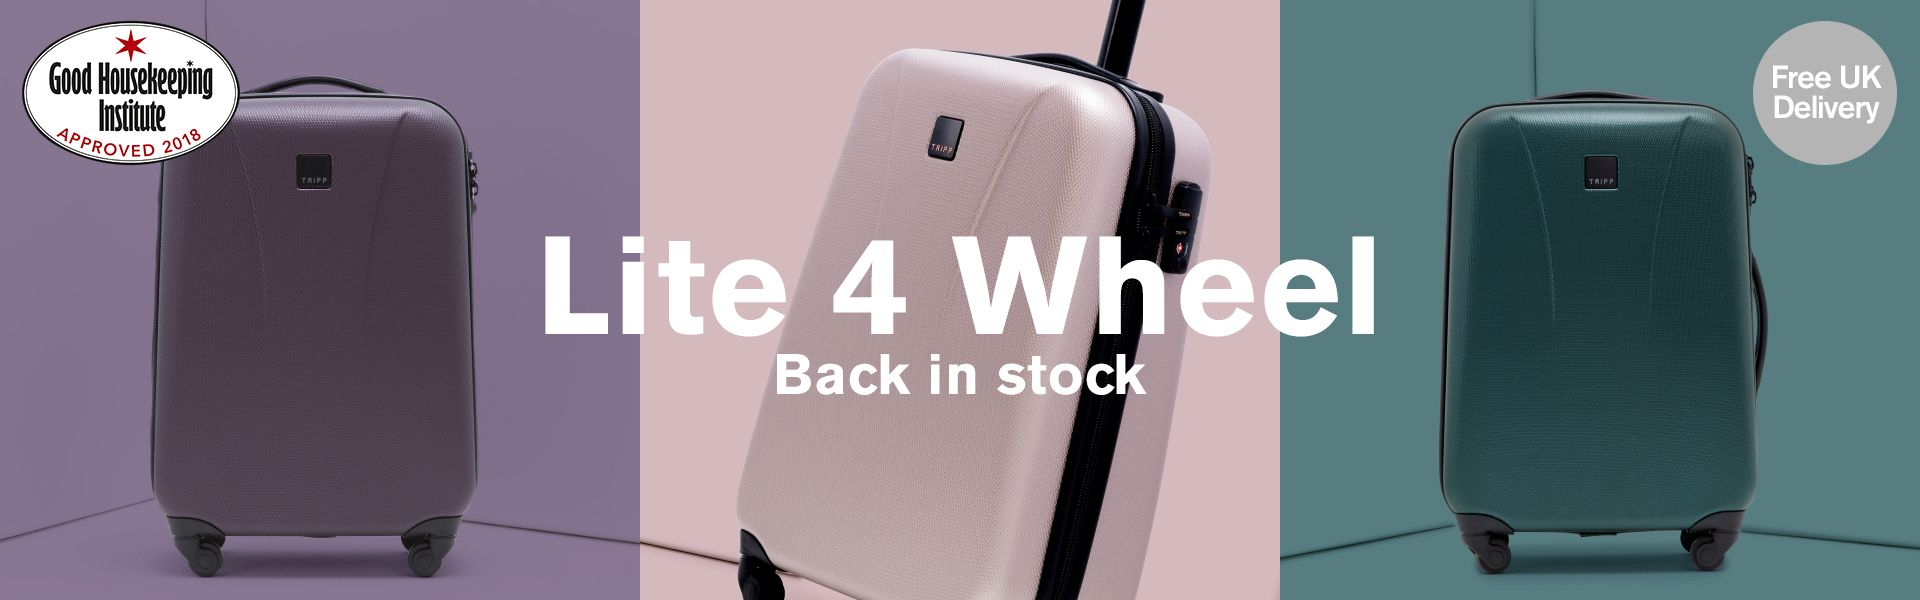 Lite 4w now back in stock